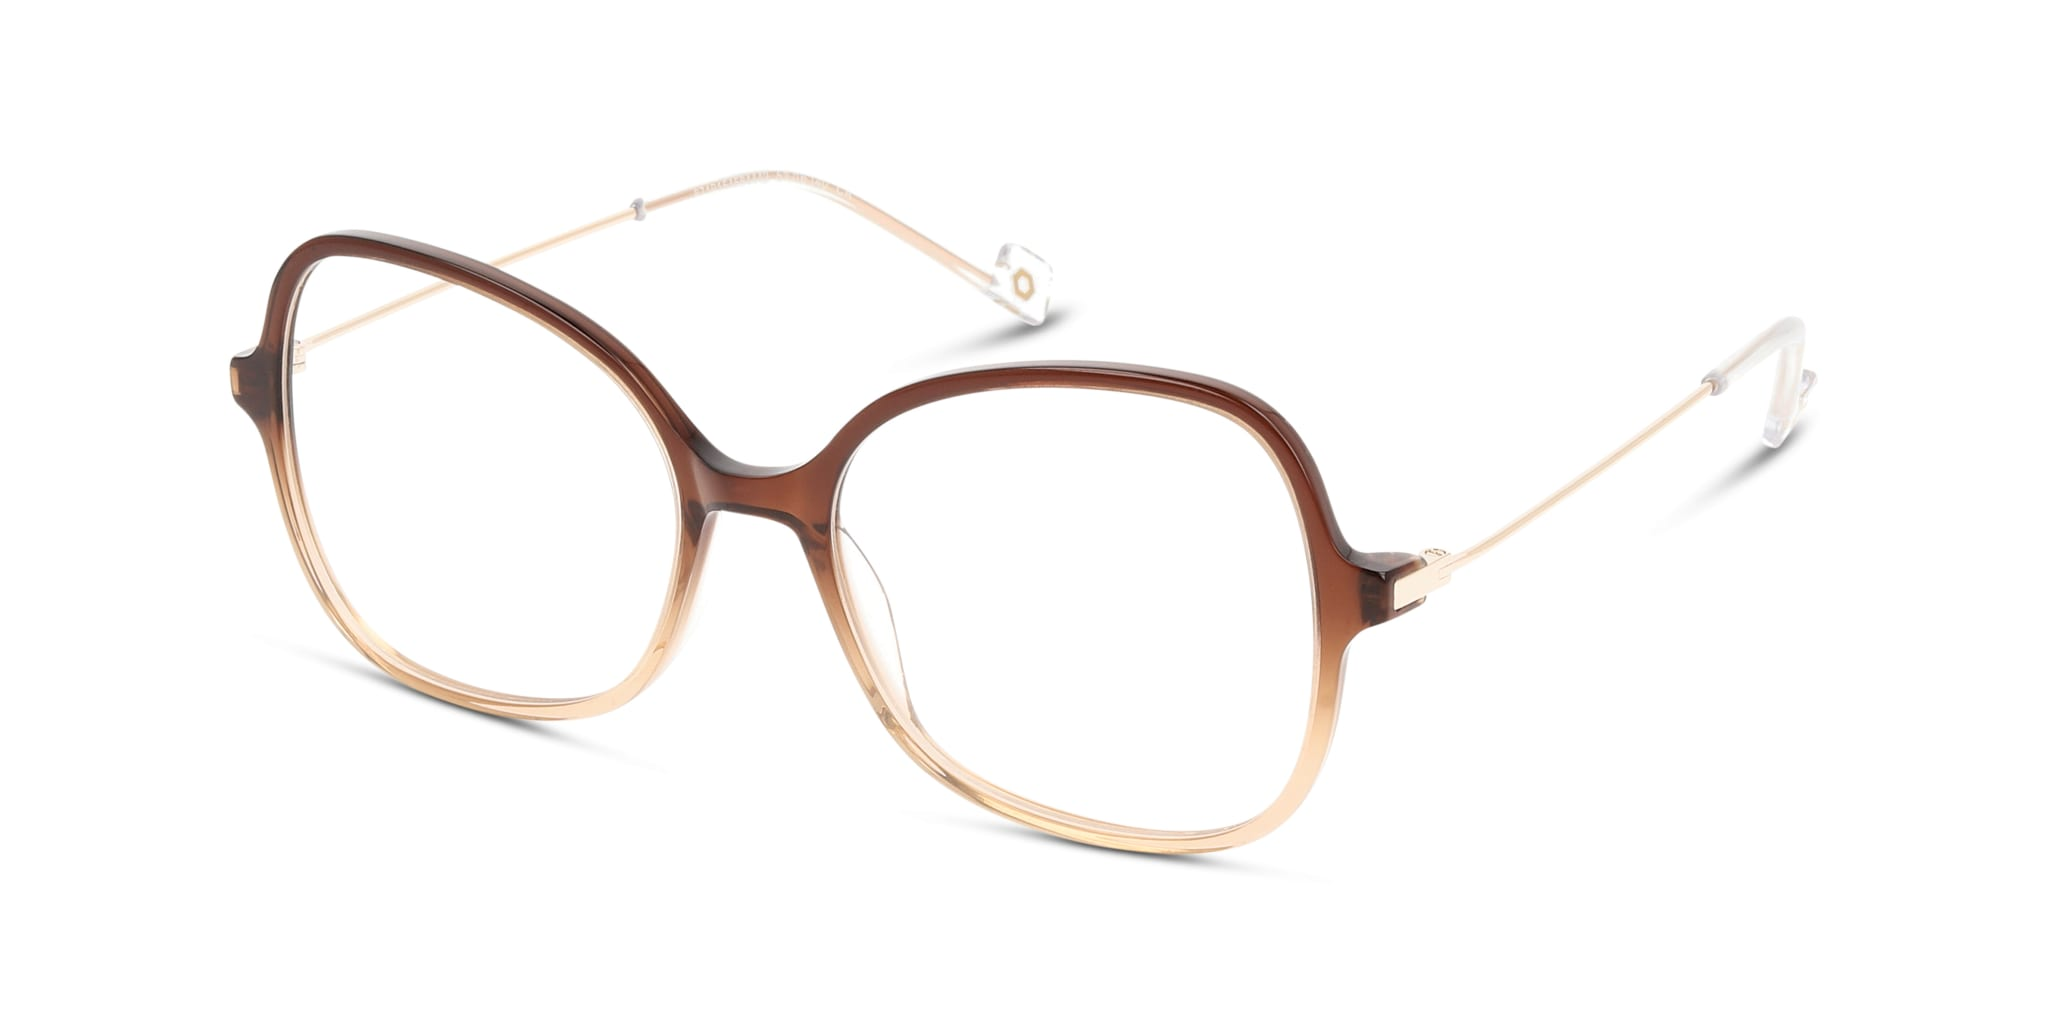 8719154584442-angle-03-in-style-iskf12-eyewear-other-gold